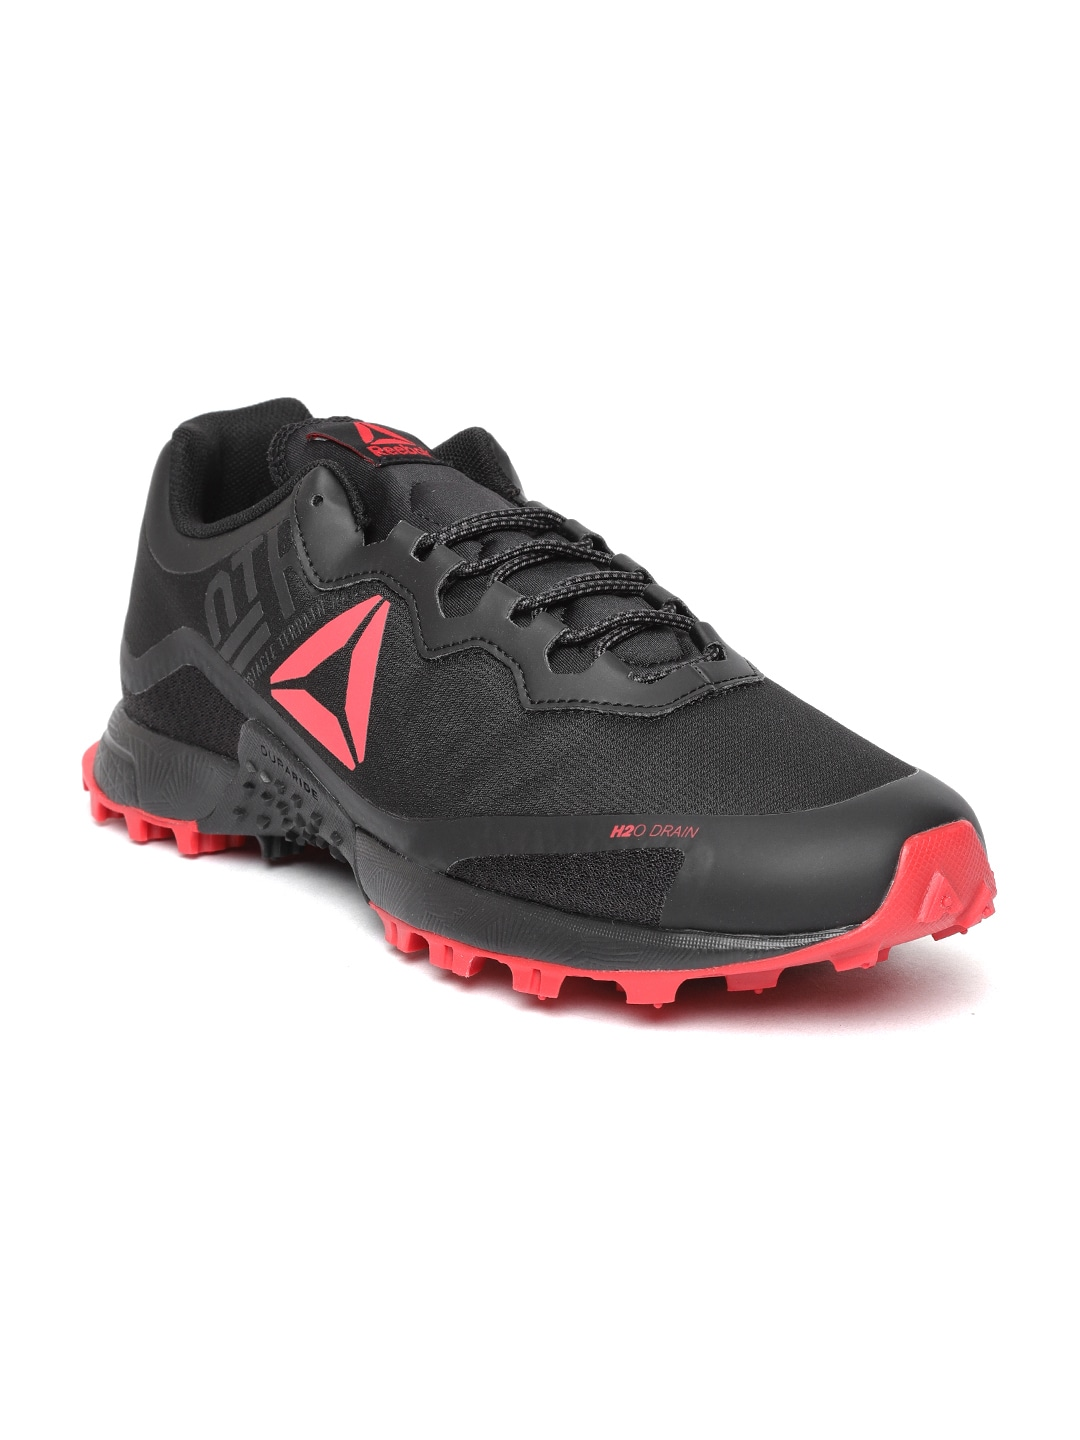 67698bced58 Reebok Sports Shoes - Buy Reebok Sports Shoes in India